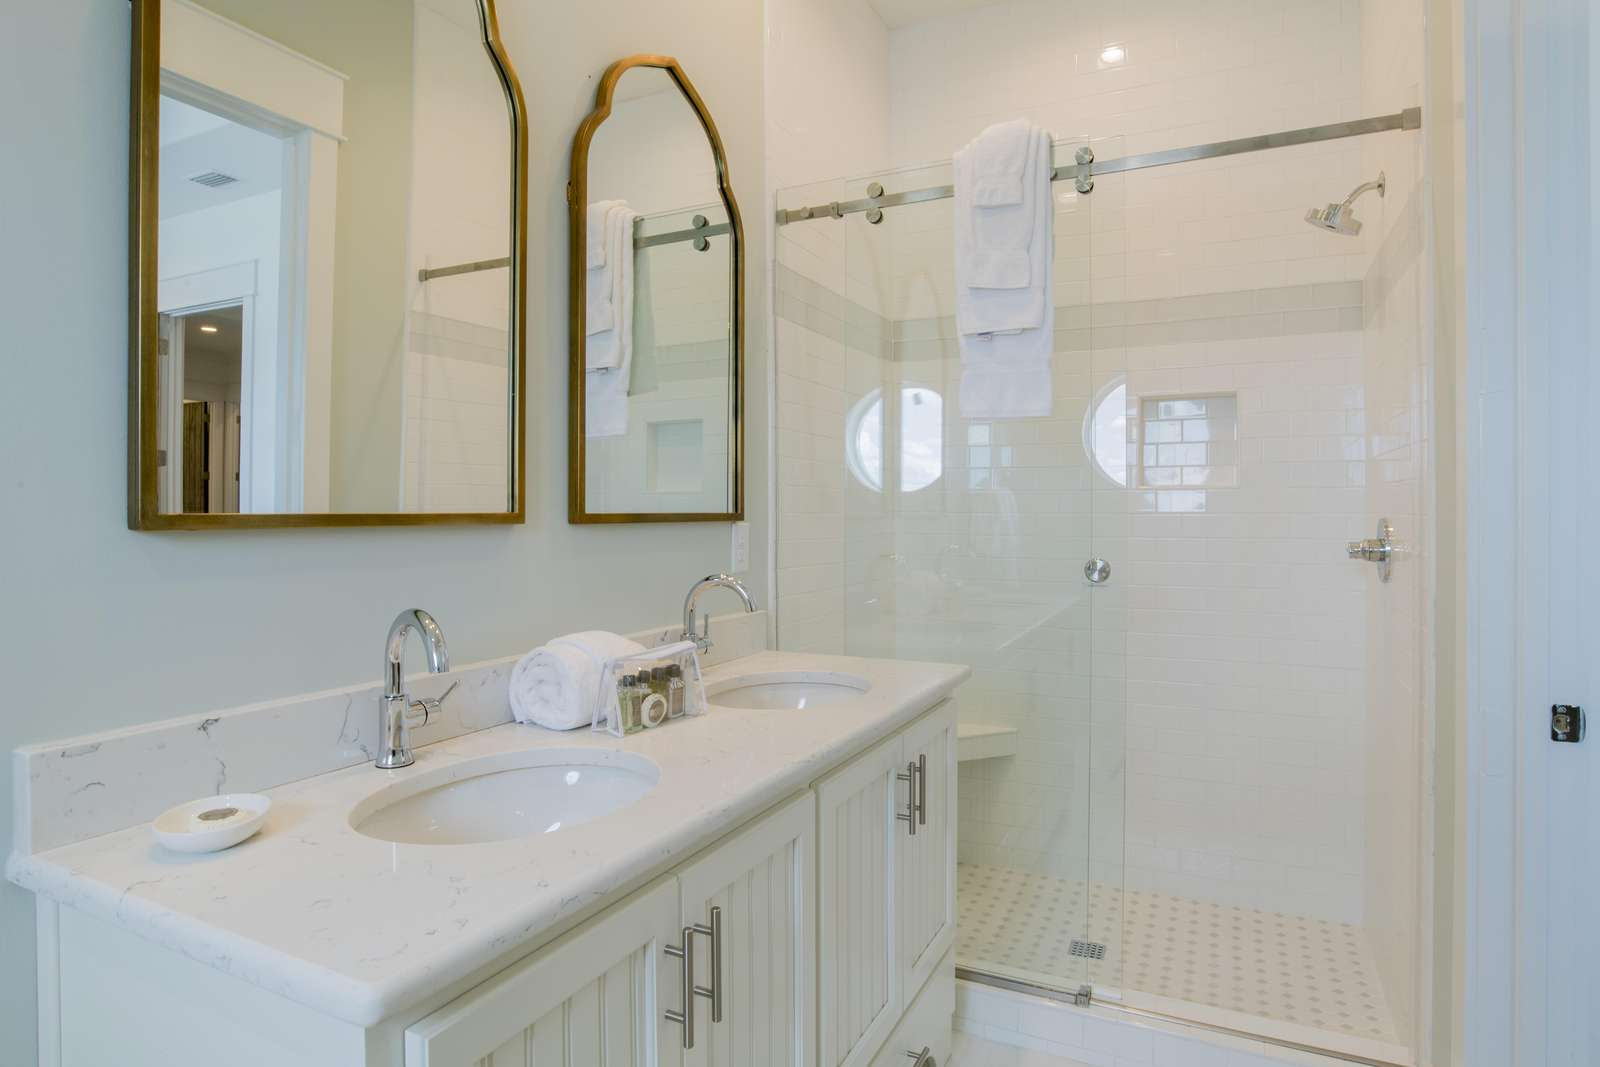 Custom tiled shower walls w/ glass sliders in every bathroom. 8 walk-in  showers &  4 tub-shower combos.